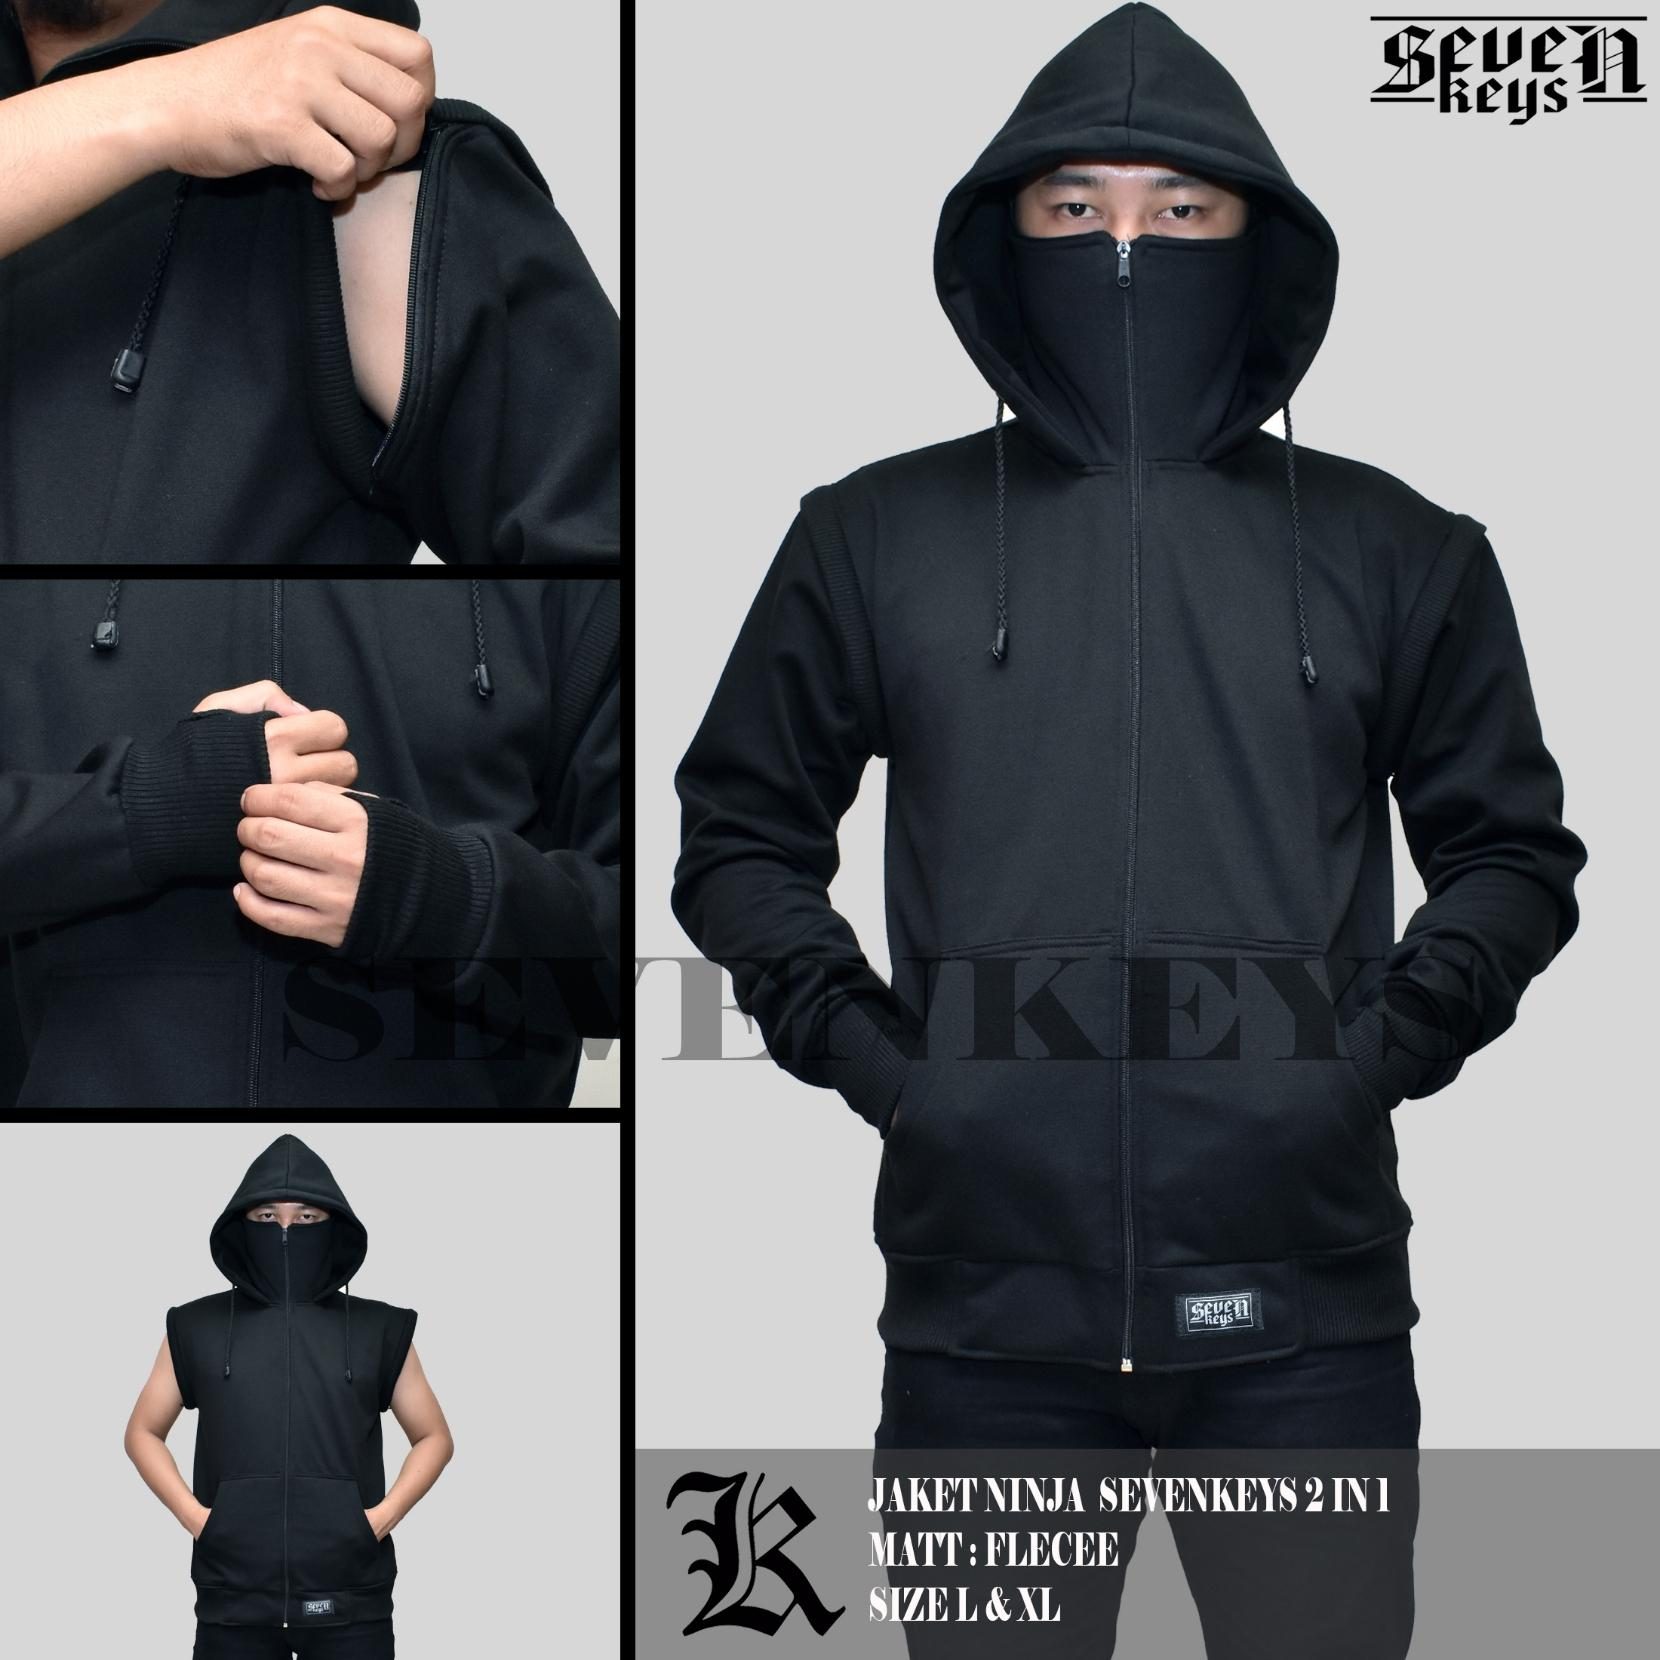 Jaket pria ninja seven keys polos original 2 in 1 4add6fff6f